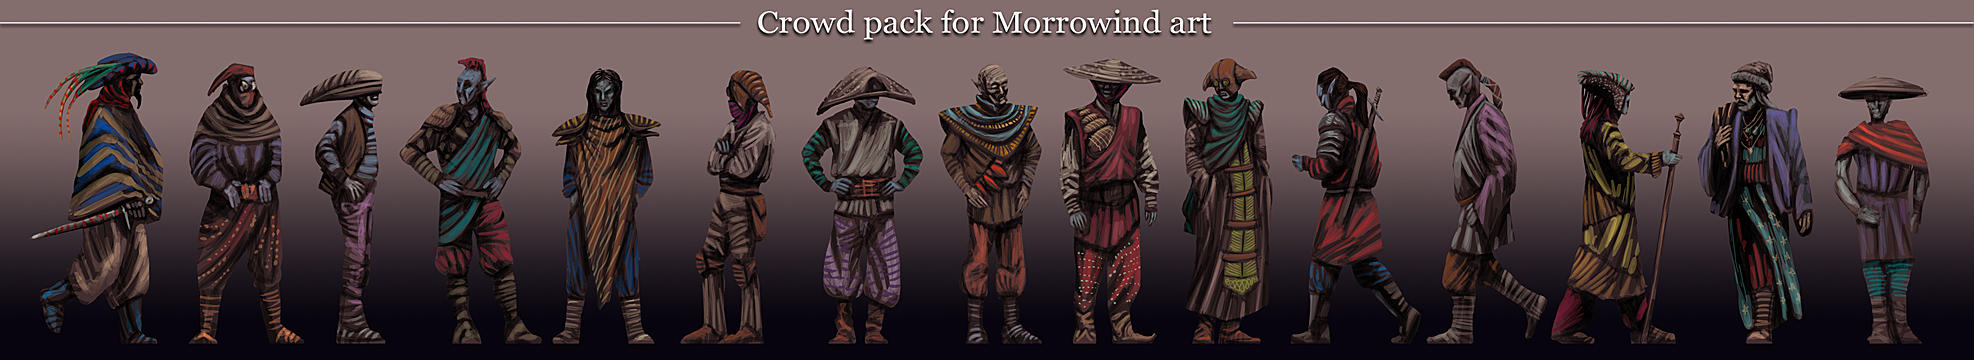 Morrowind persons pack